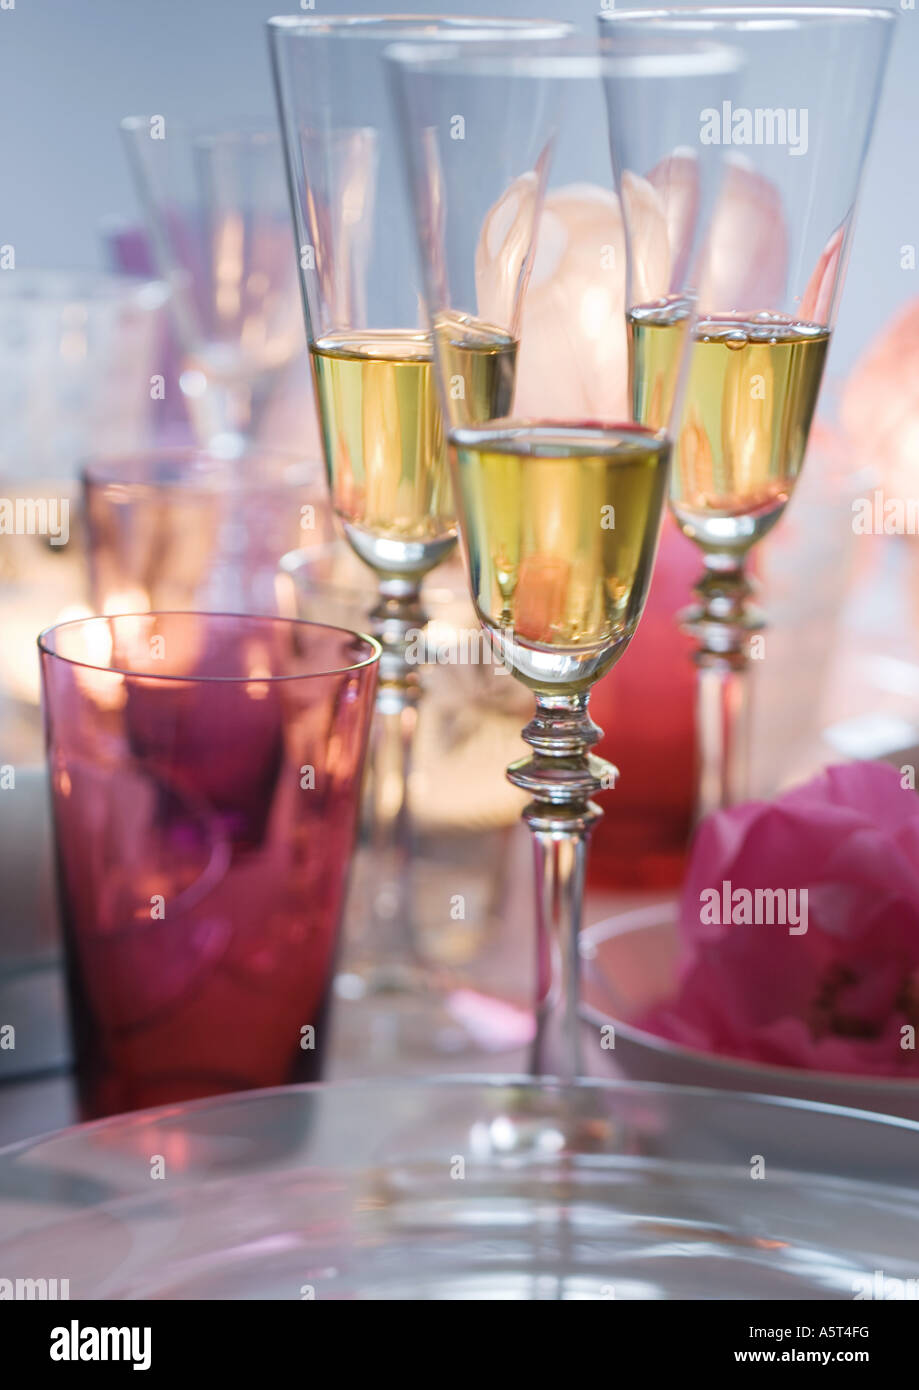 Glasses of champagne on set table - Stock Image